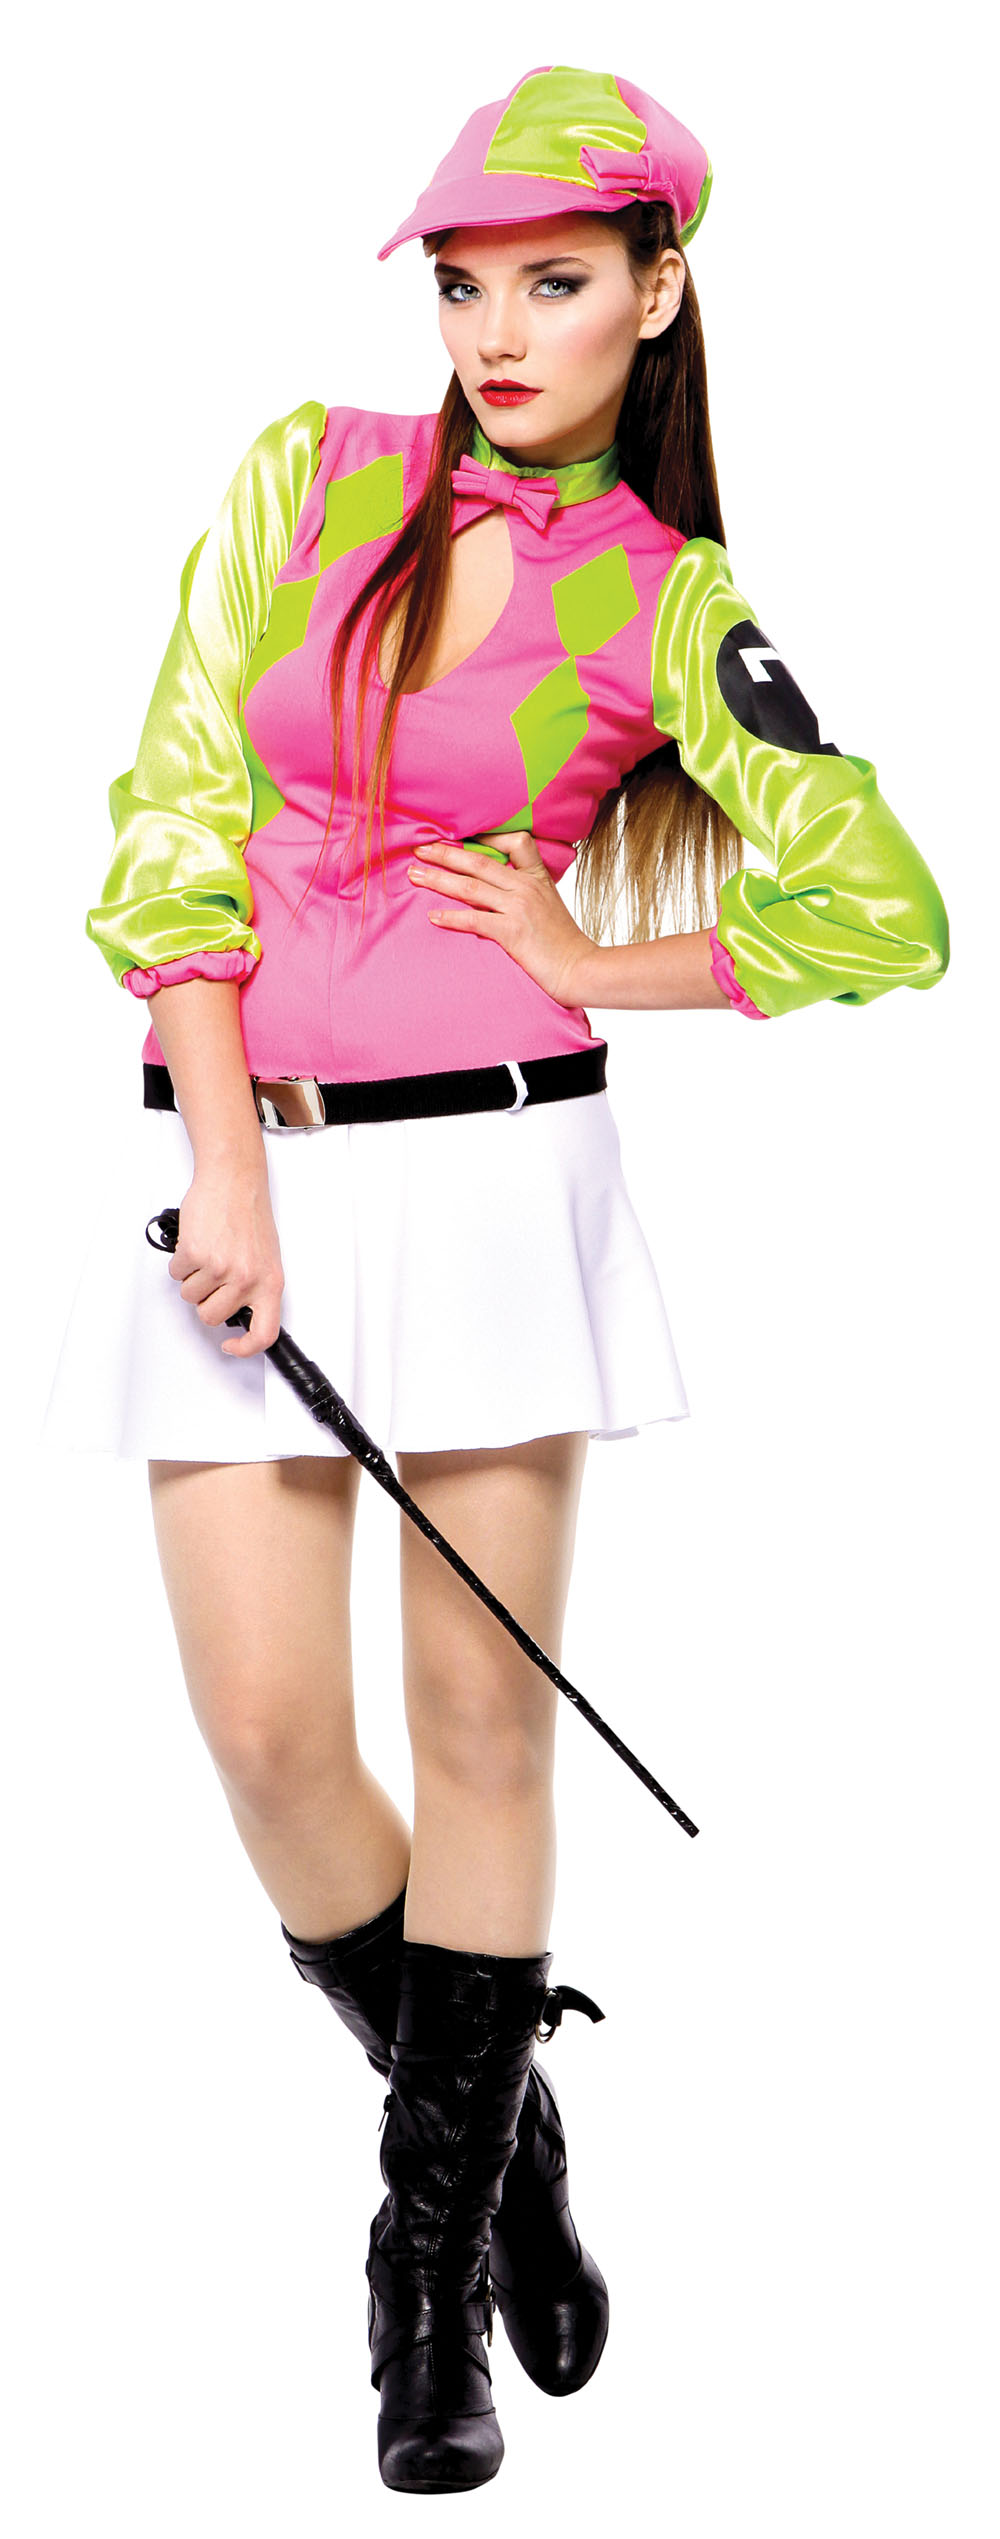 Ladies Sexy Jockey Fancy Dress Costume Horse Rider Pink & Green Outfit Uk 10-14